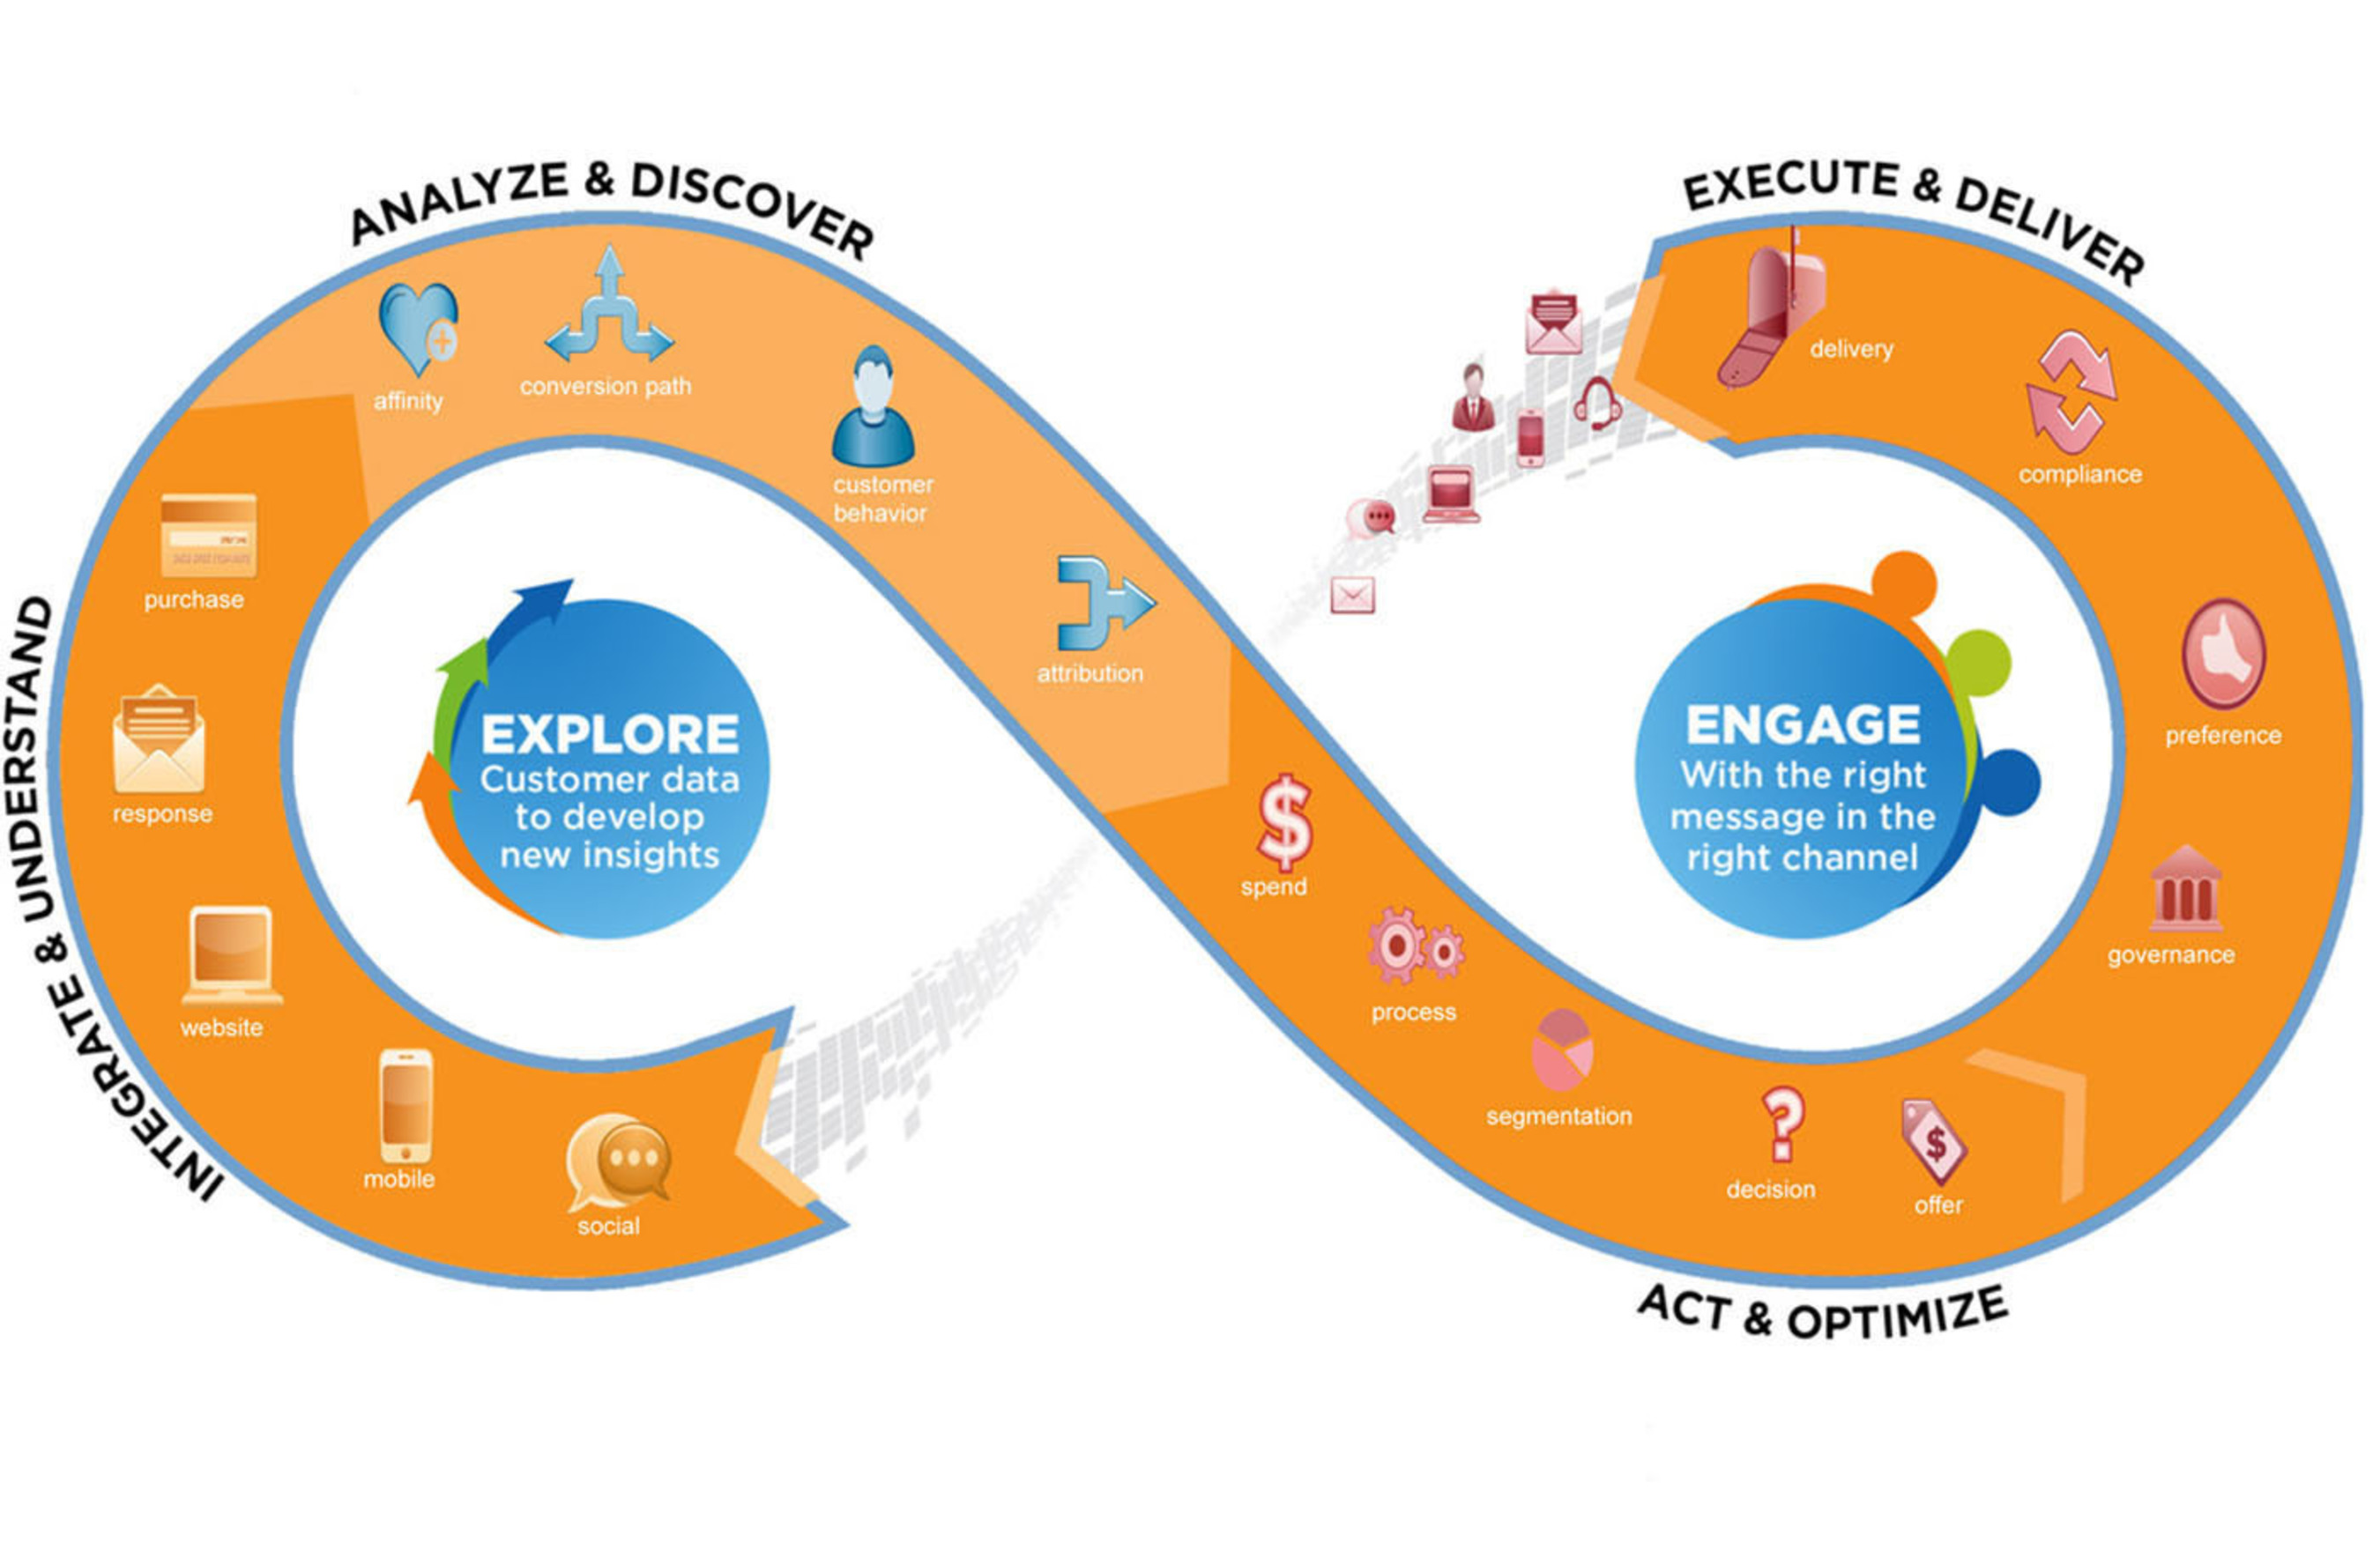 Teradata's Interactive Customer Engagement solution creates more relevant customer experiences.  ...